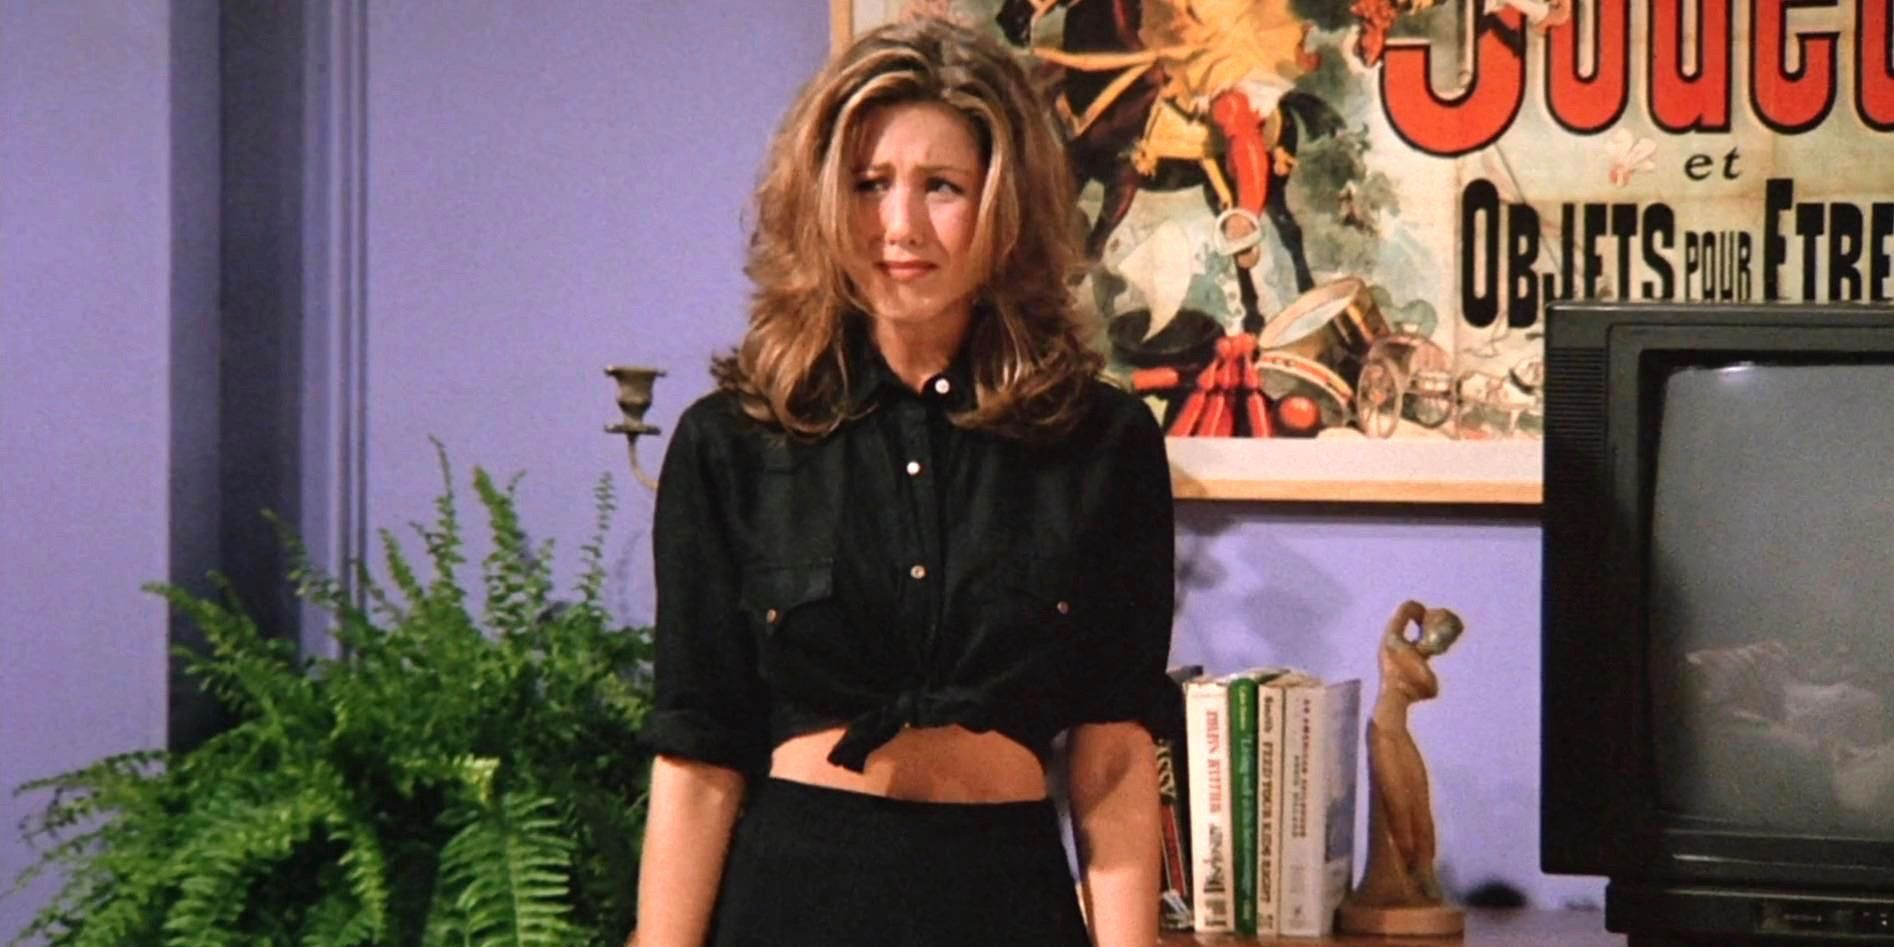 Jennifer Aniston Still Wears Clothes & Shoes Taken From The Friends Set